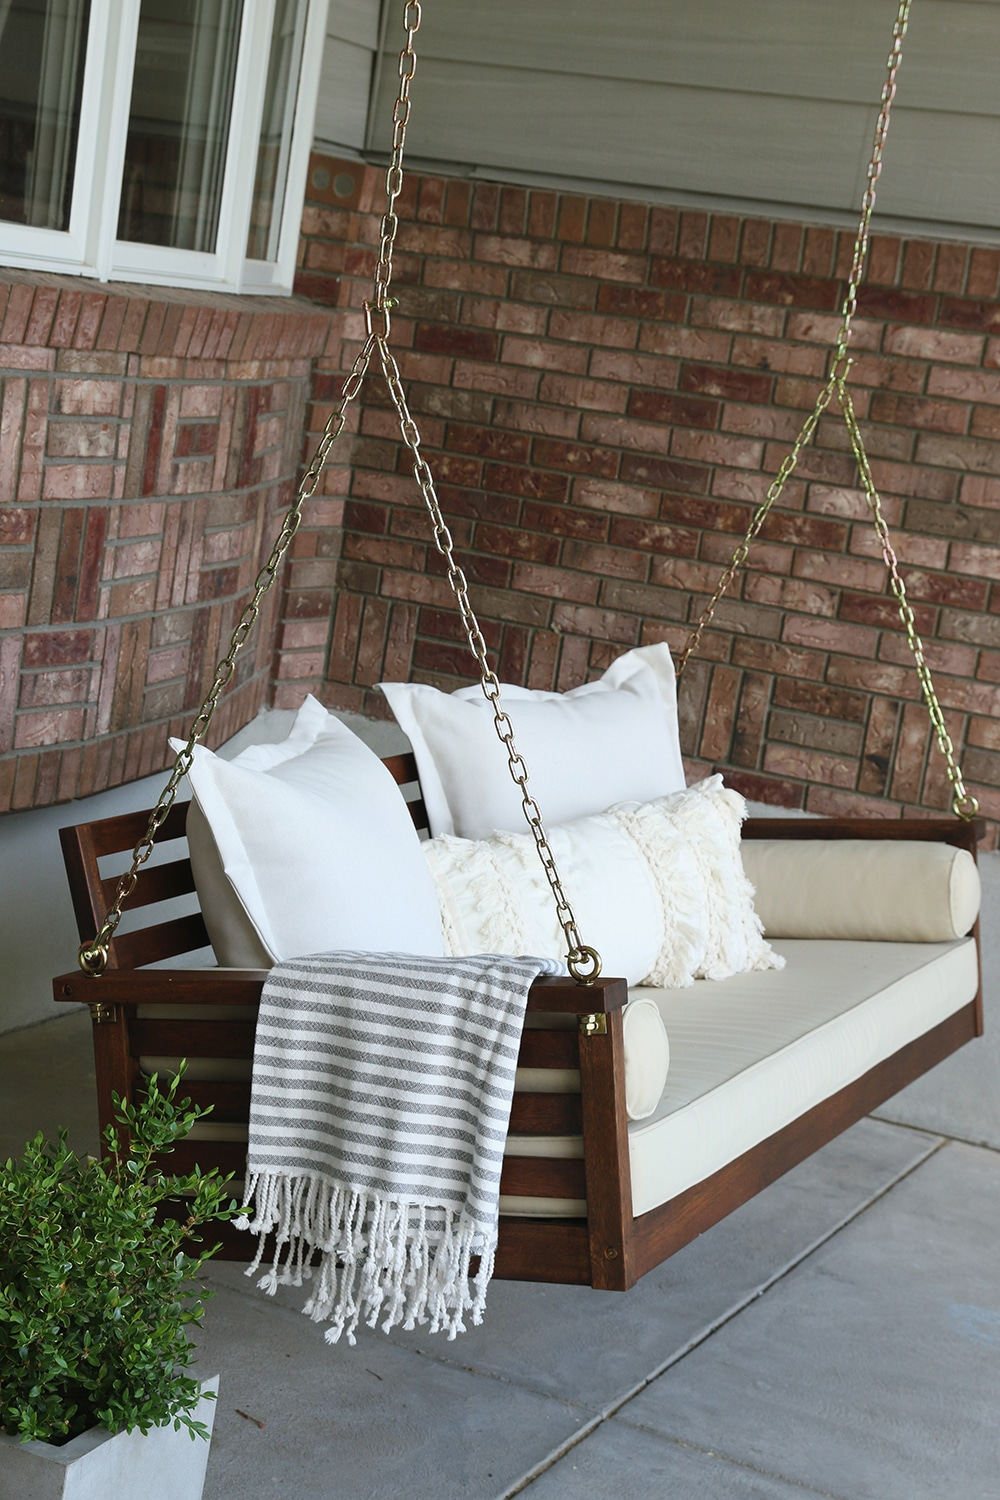 plans front size porch beds with rope swing swinging